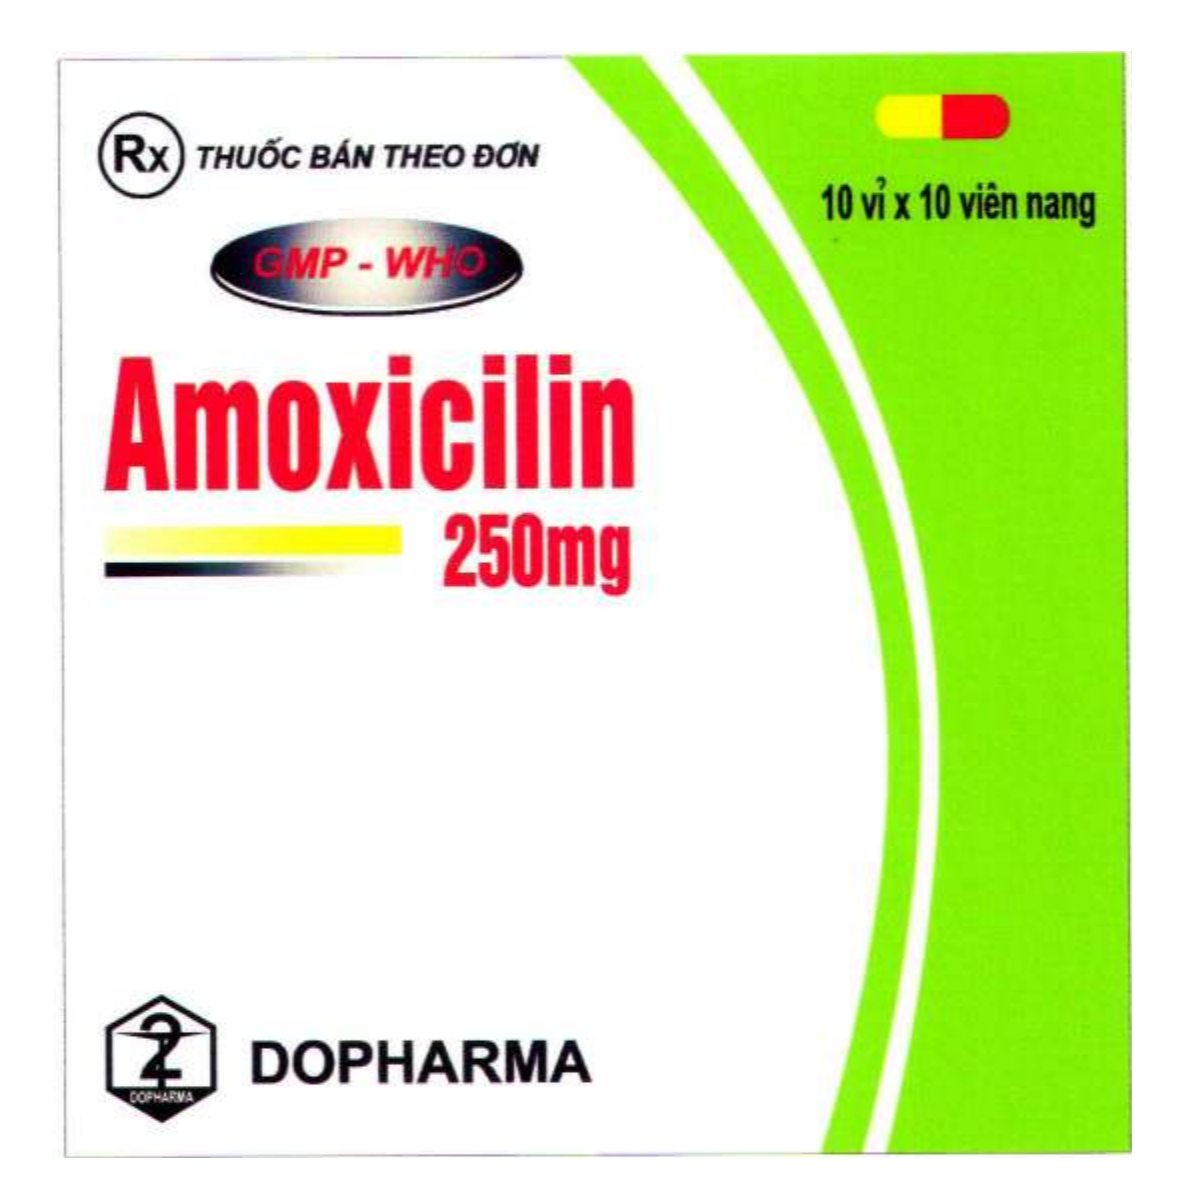 Amoxicilin 250mg - DP TW2